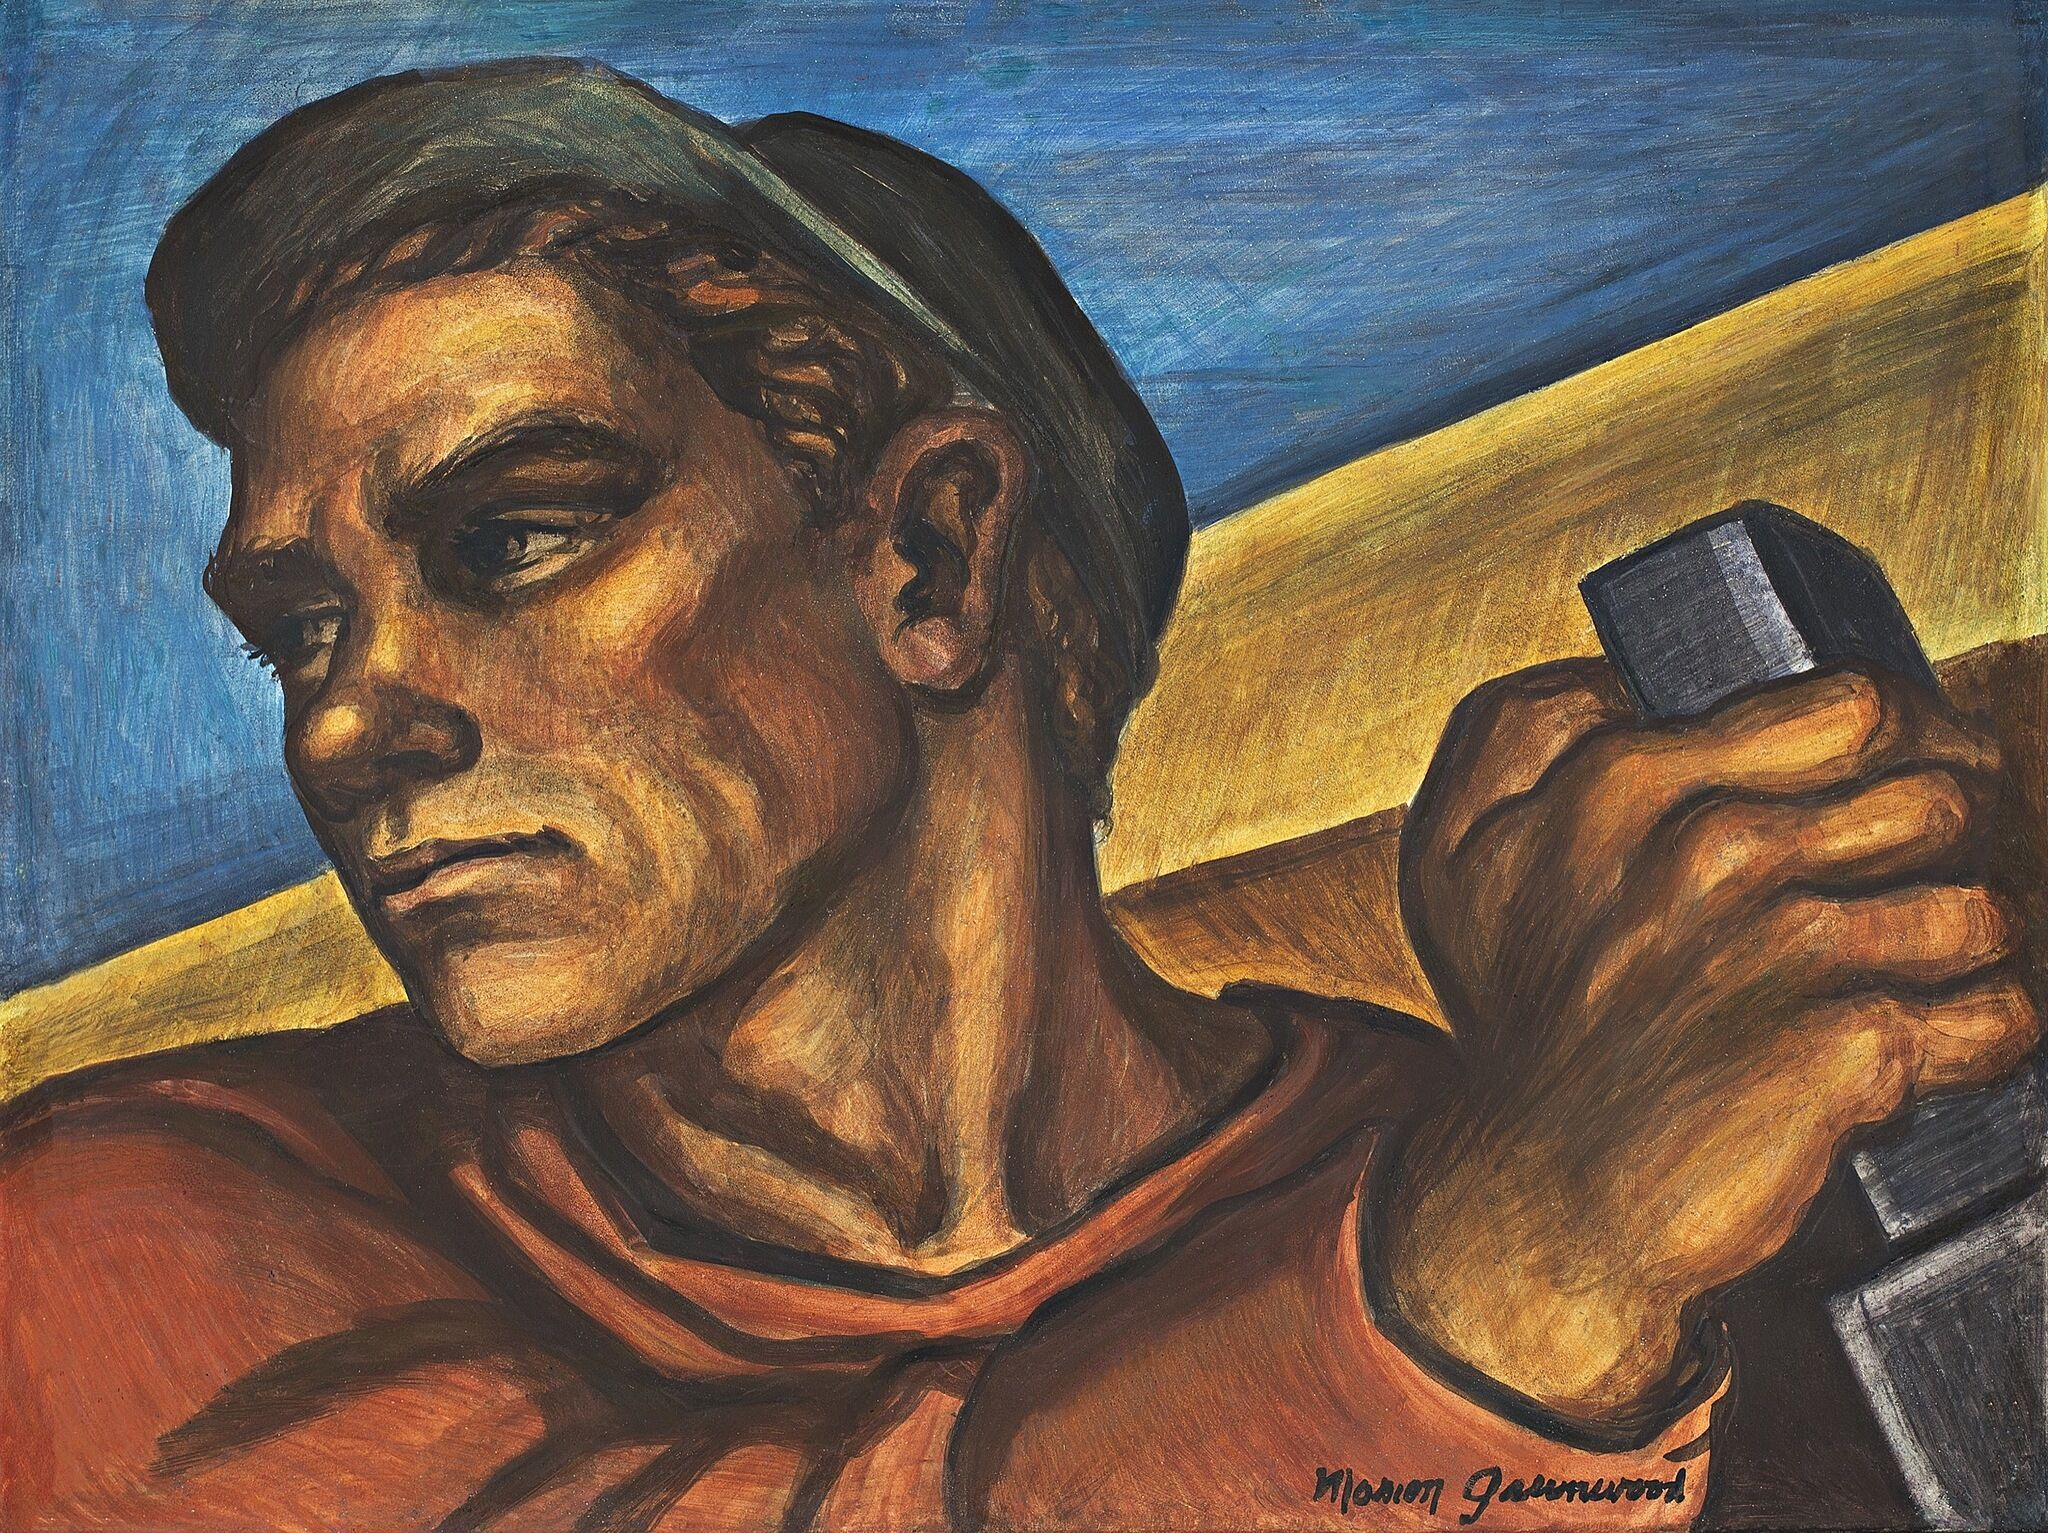 A painting of a construction worker.